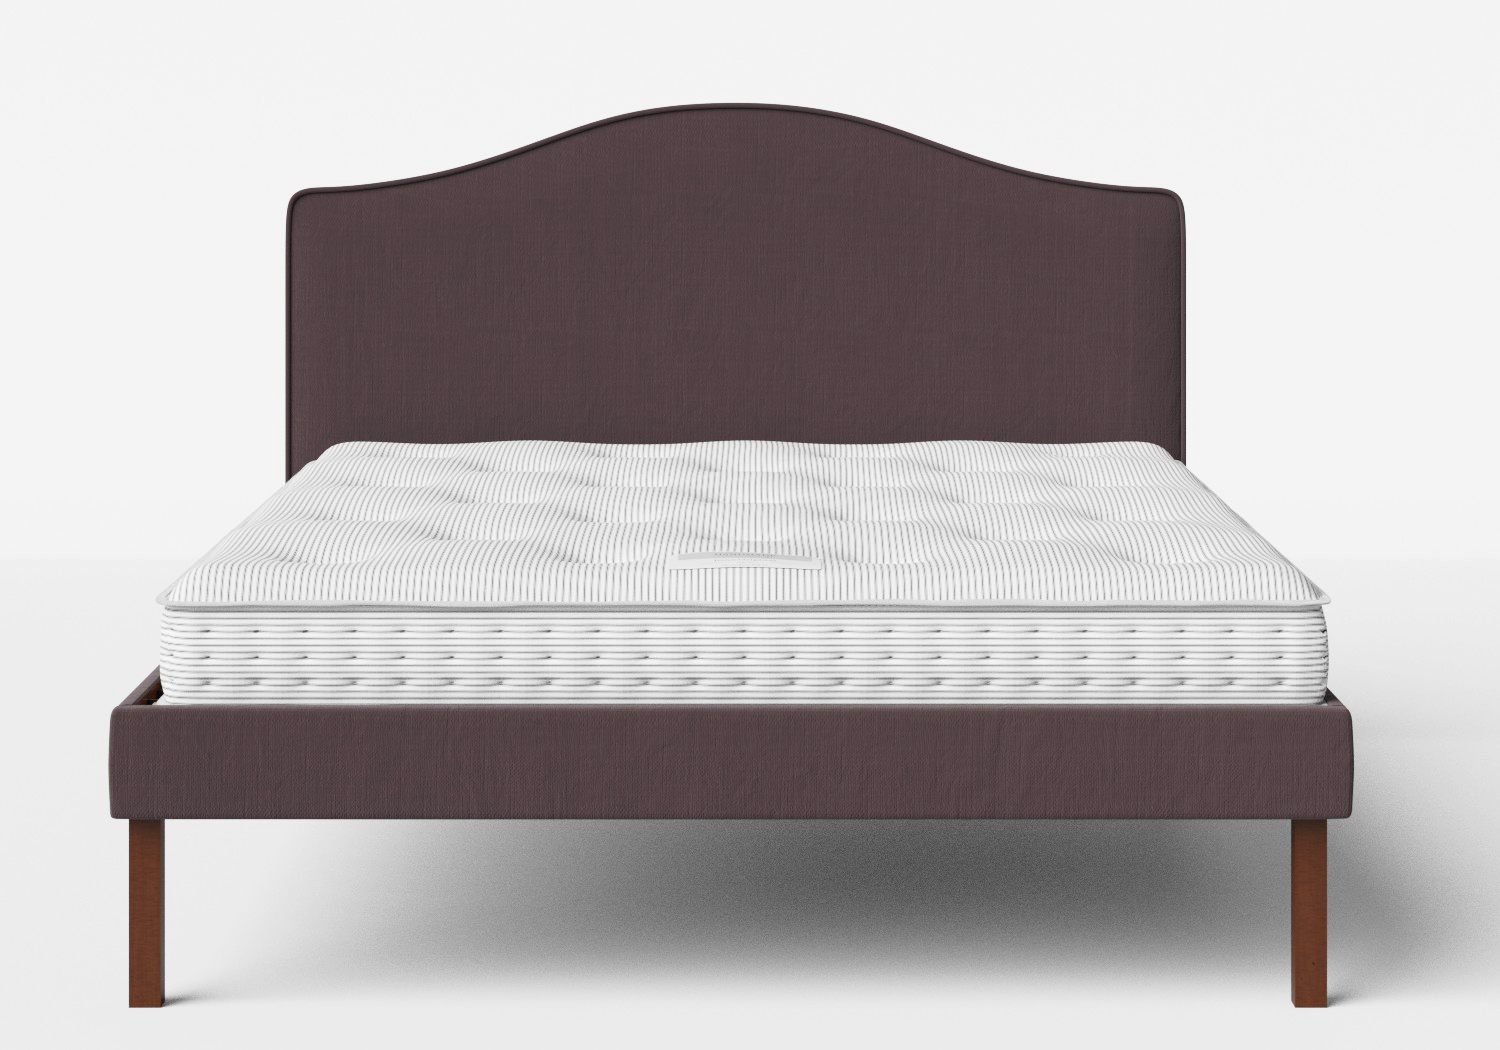 Yoshida Upholstered Bed with Aubergine fabric with piping shown with Juno 1 mattress